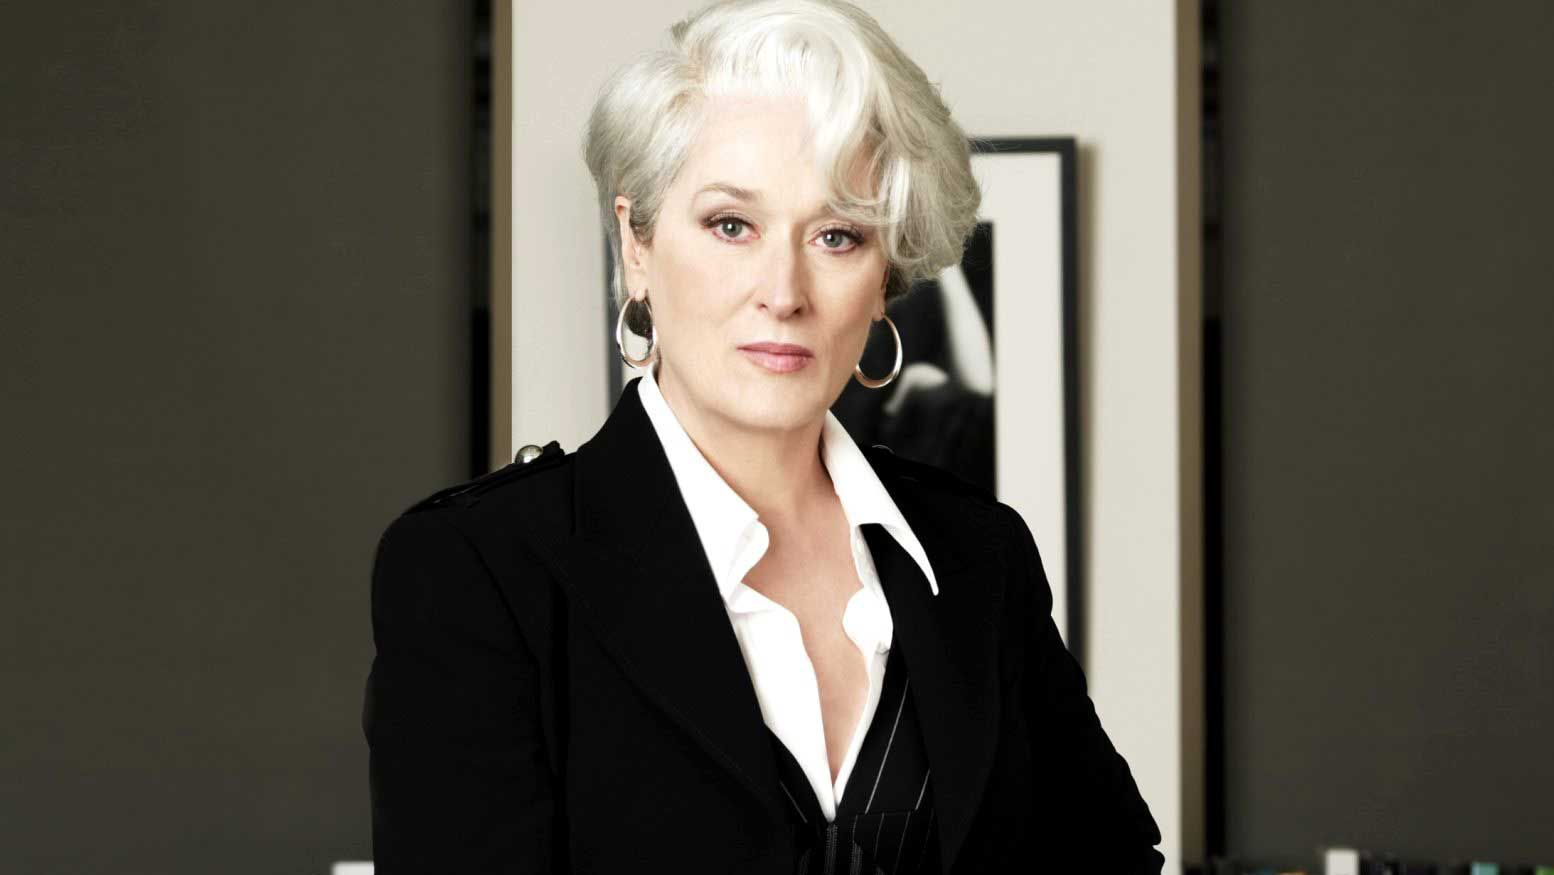 Meryl Streep's Miranda Priestly wasn't inspired by Anna Wintour